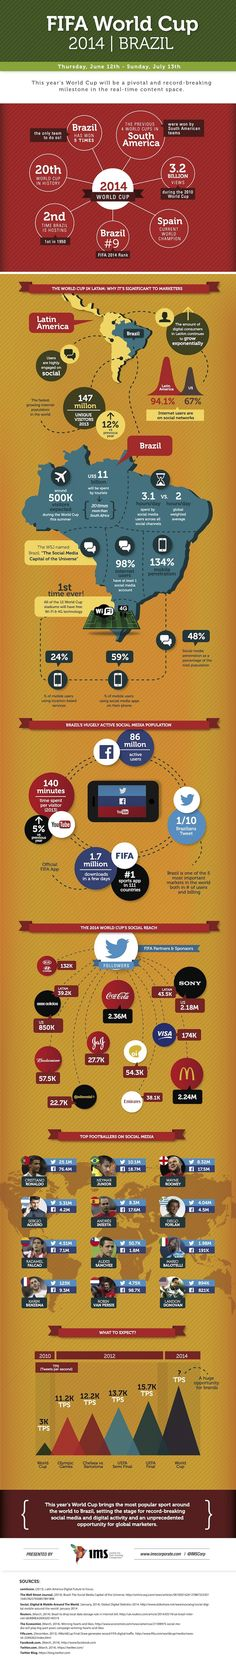 Scoring Ecommerce in Brazil. 2014 World Cup Kicks Off Today!